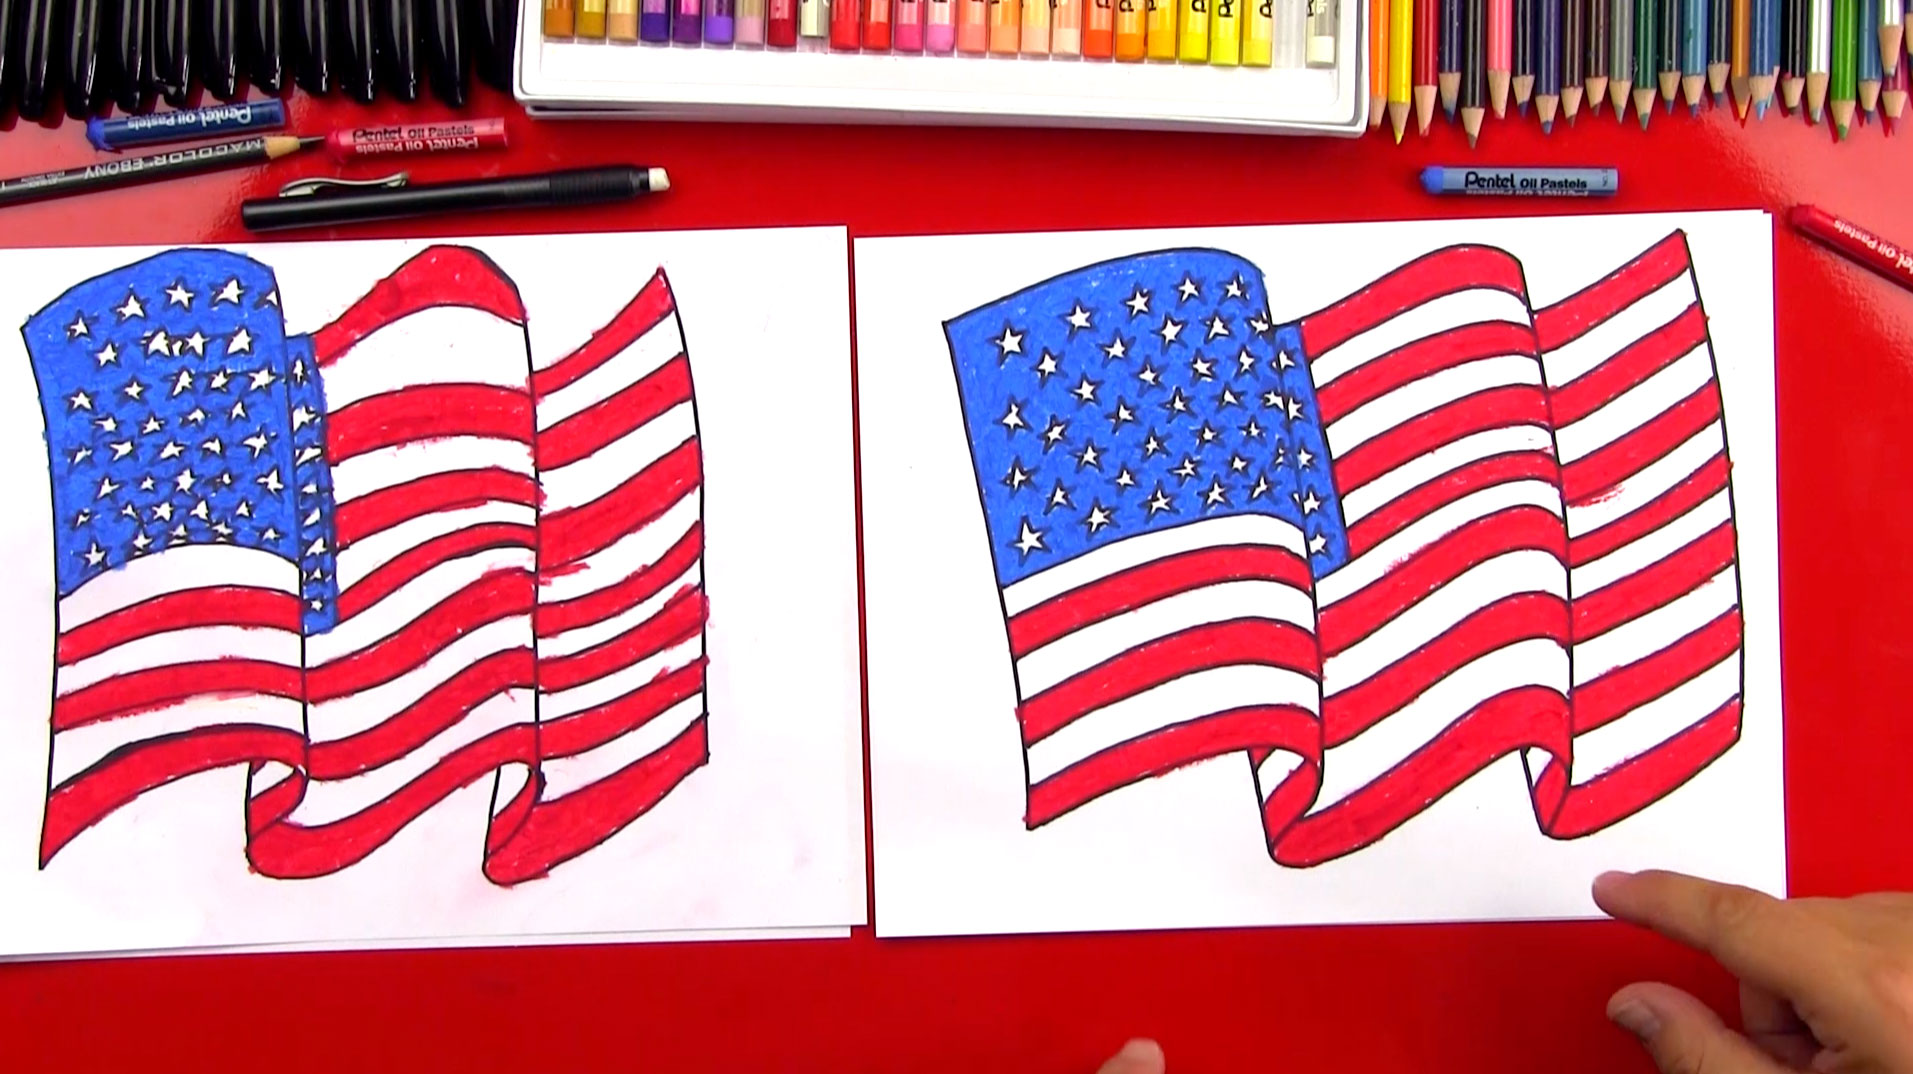 1913x1074 How To Draw The American Flag